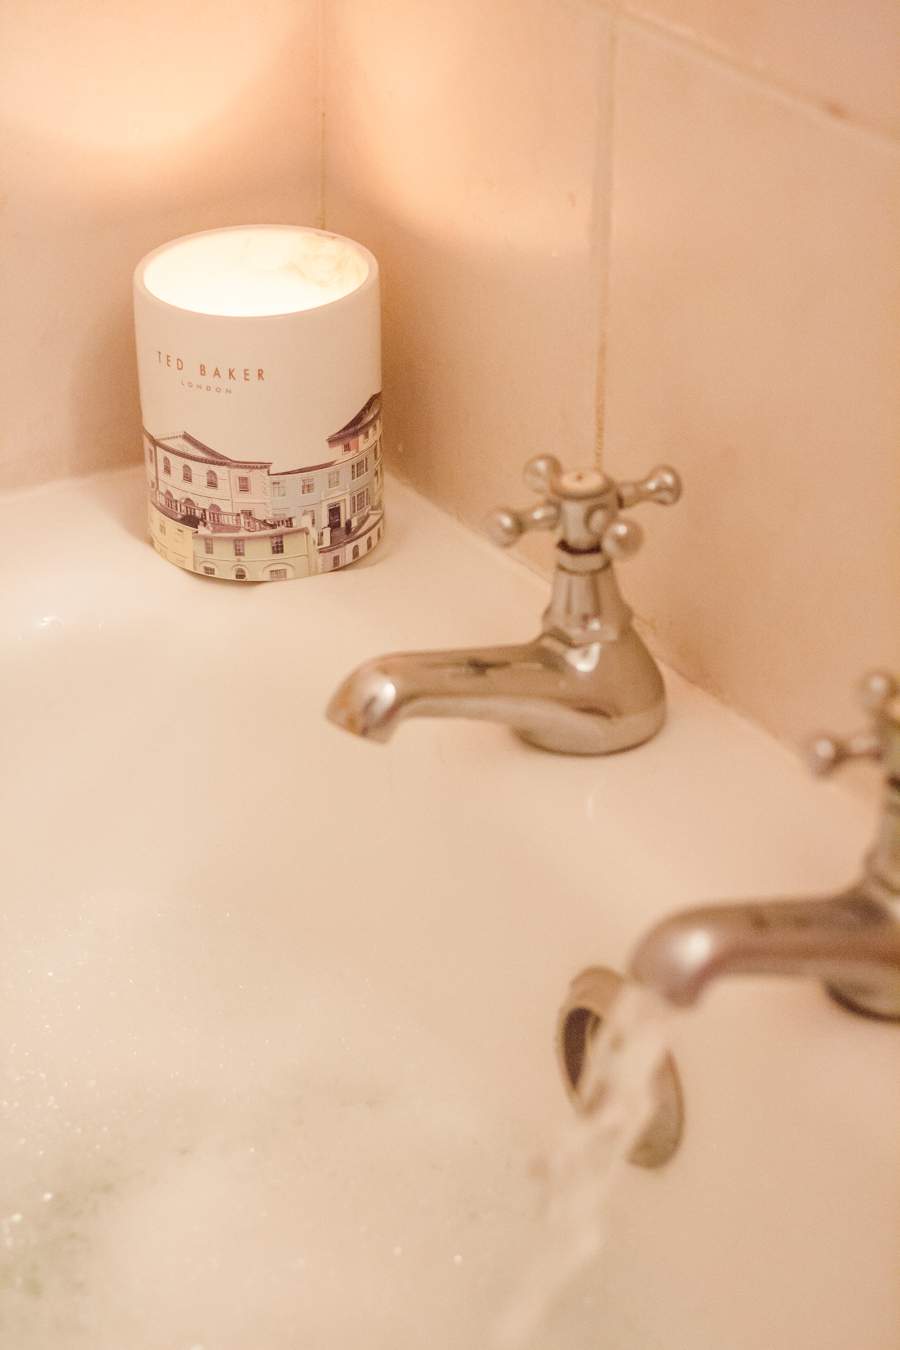 Bath and Ted Baker Candle